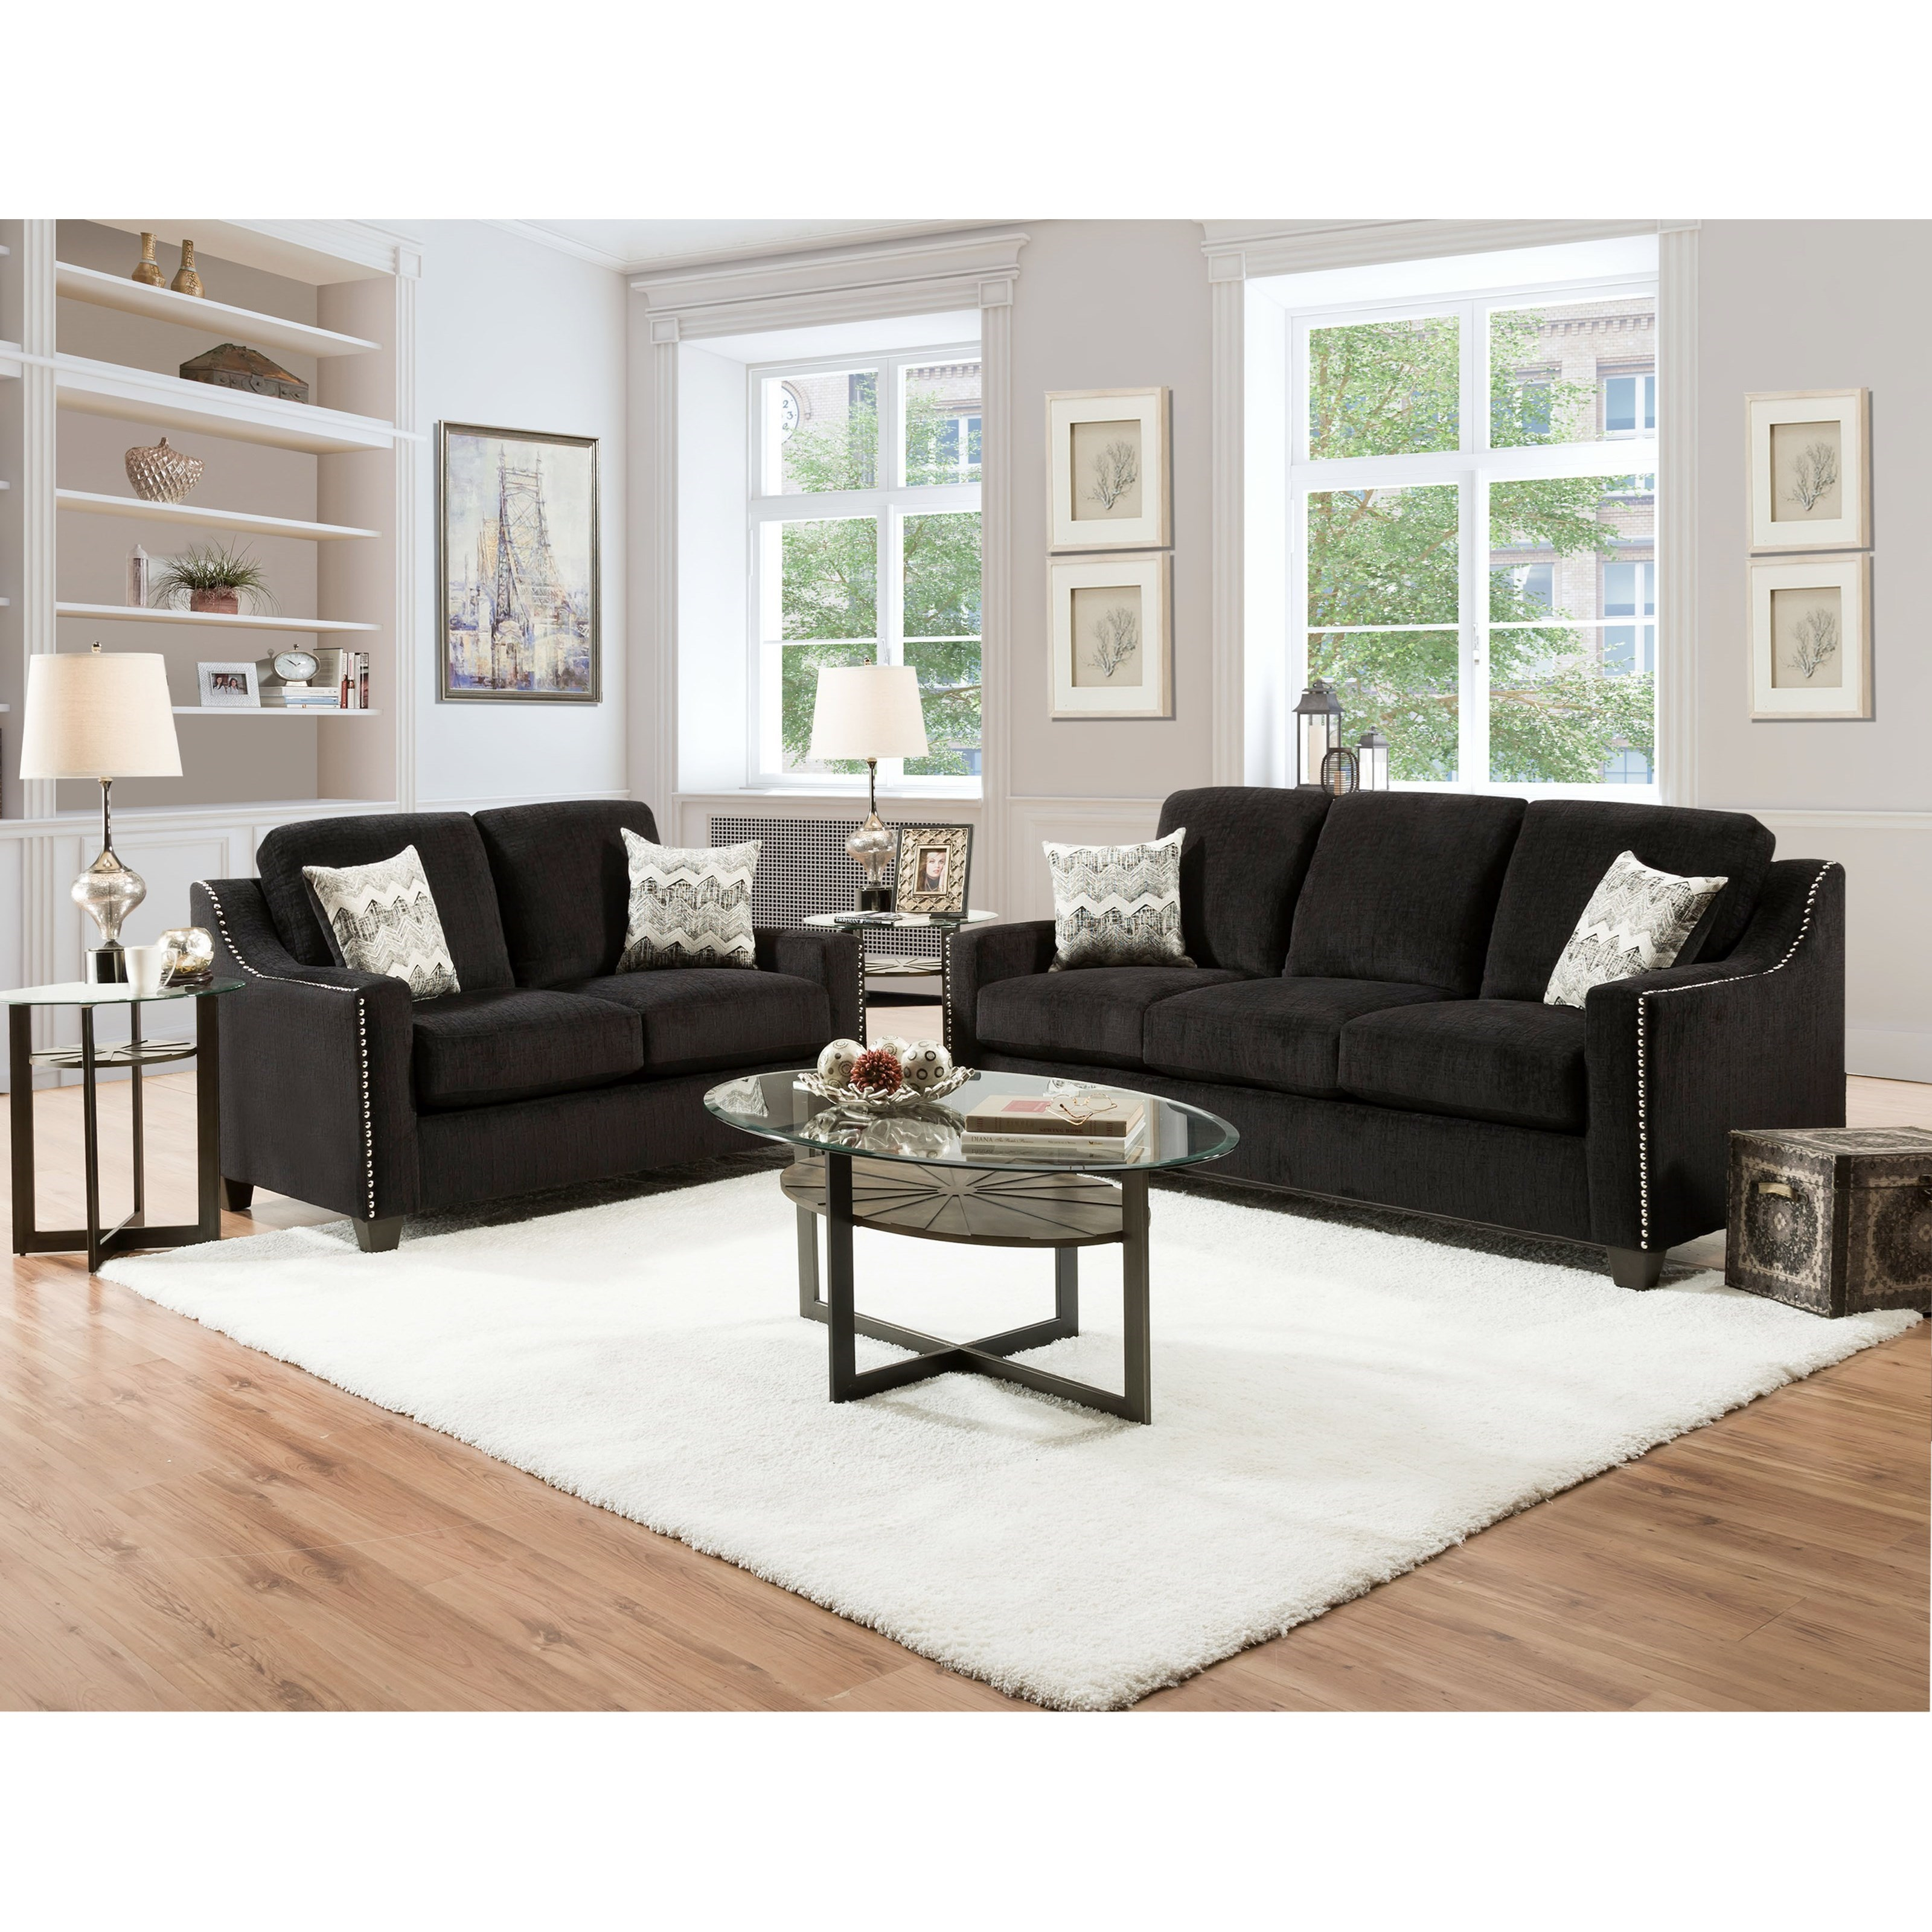 3470 Stationary Living Room Group by Peak Living at Prime Brothers Furniture